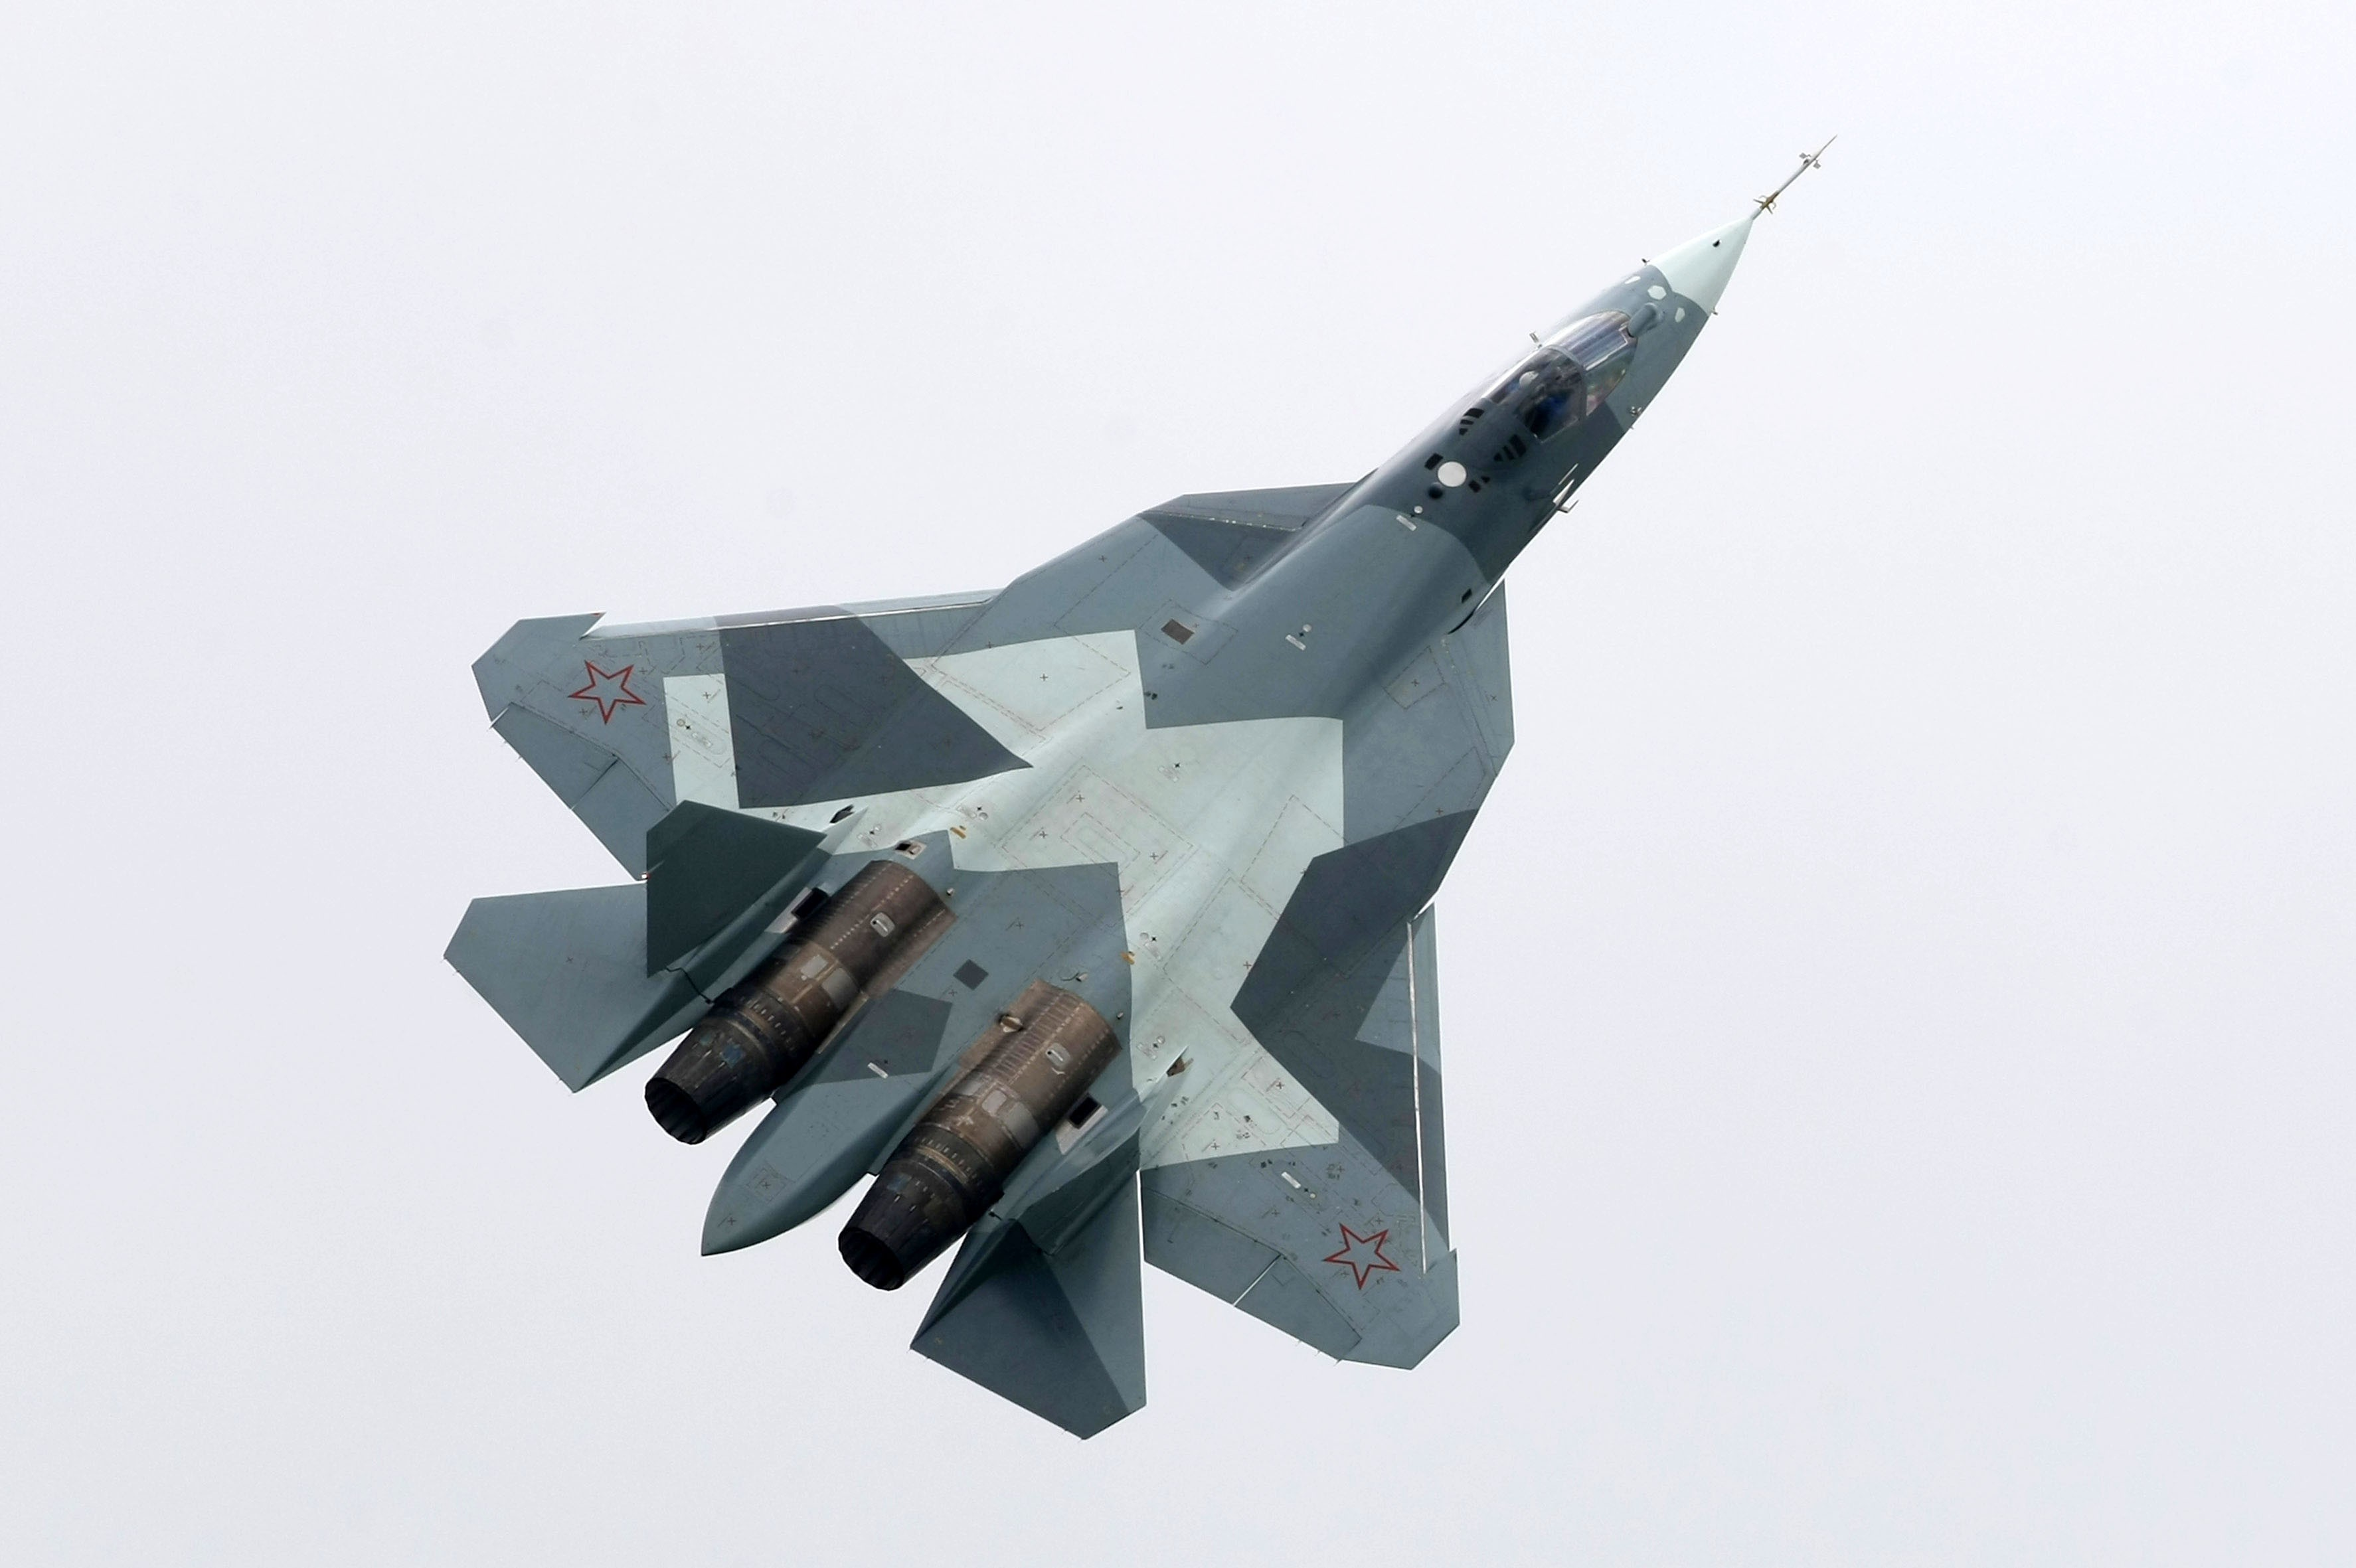 50 sukhoi t 50 pak fa wallpapers hd desktop and mobile backgrounds - Related Wallpapers Sukhoi T 50